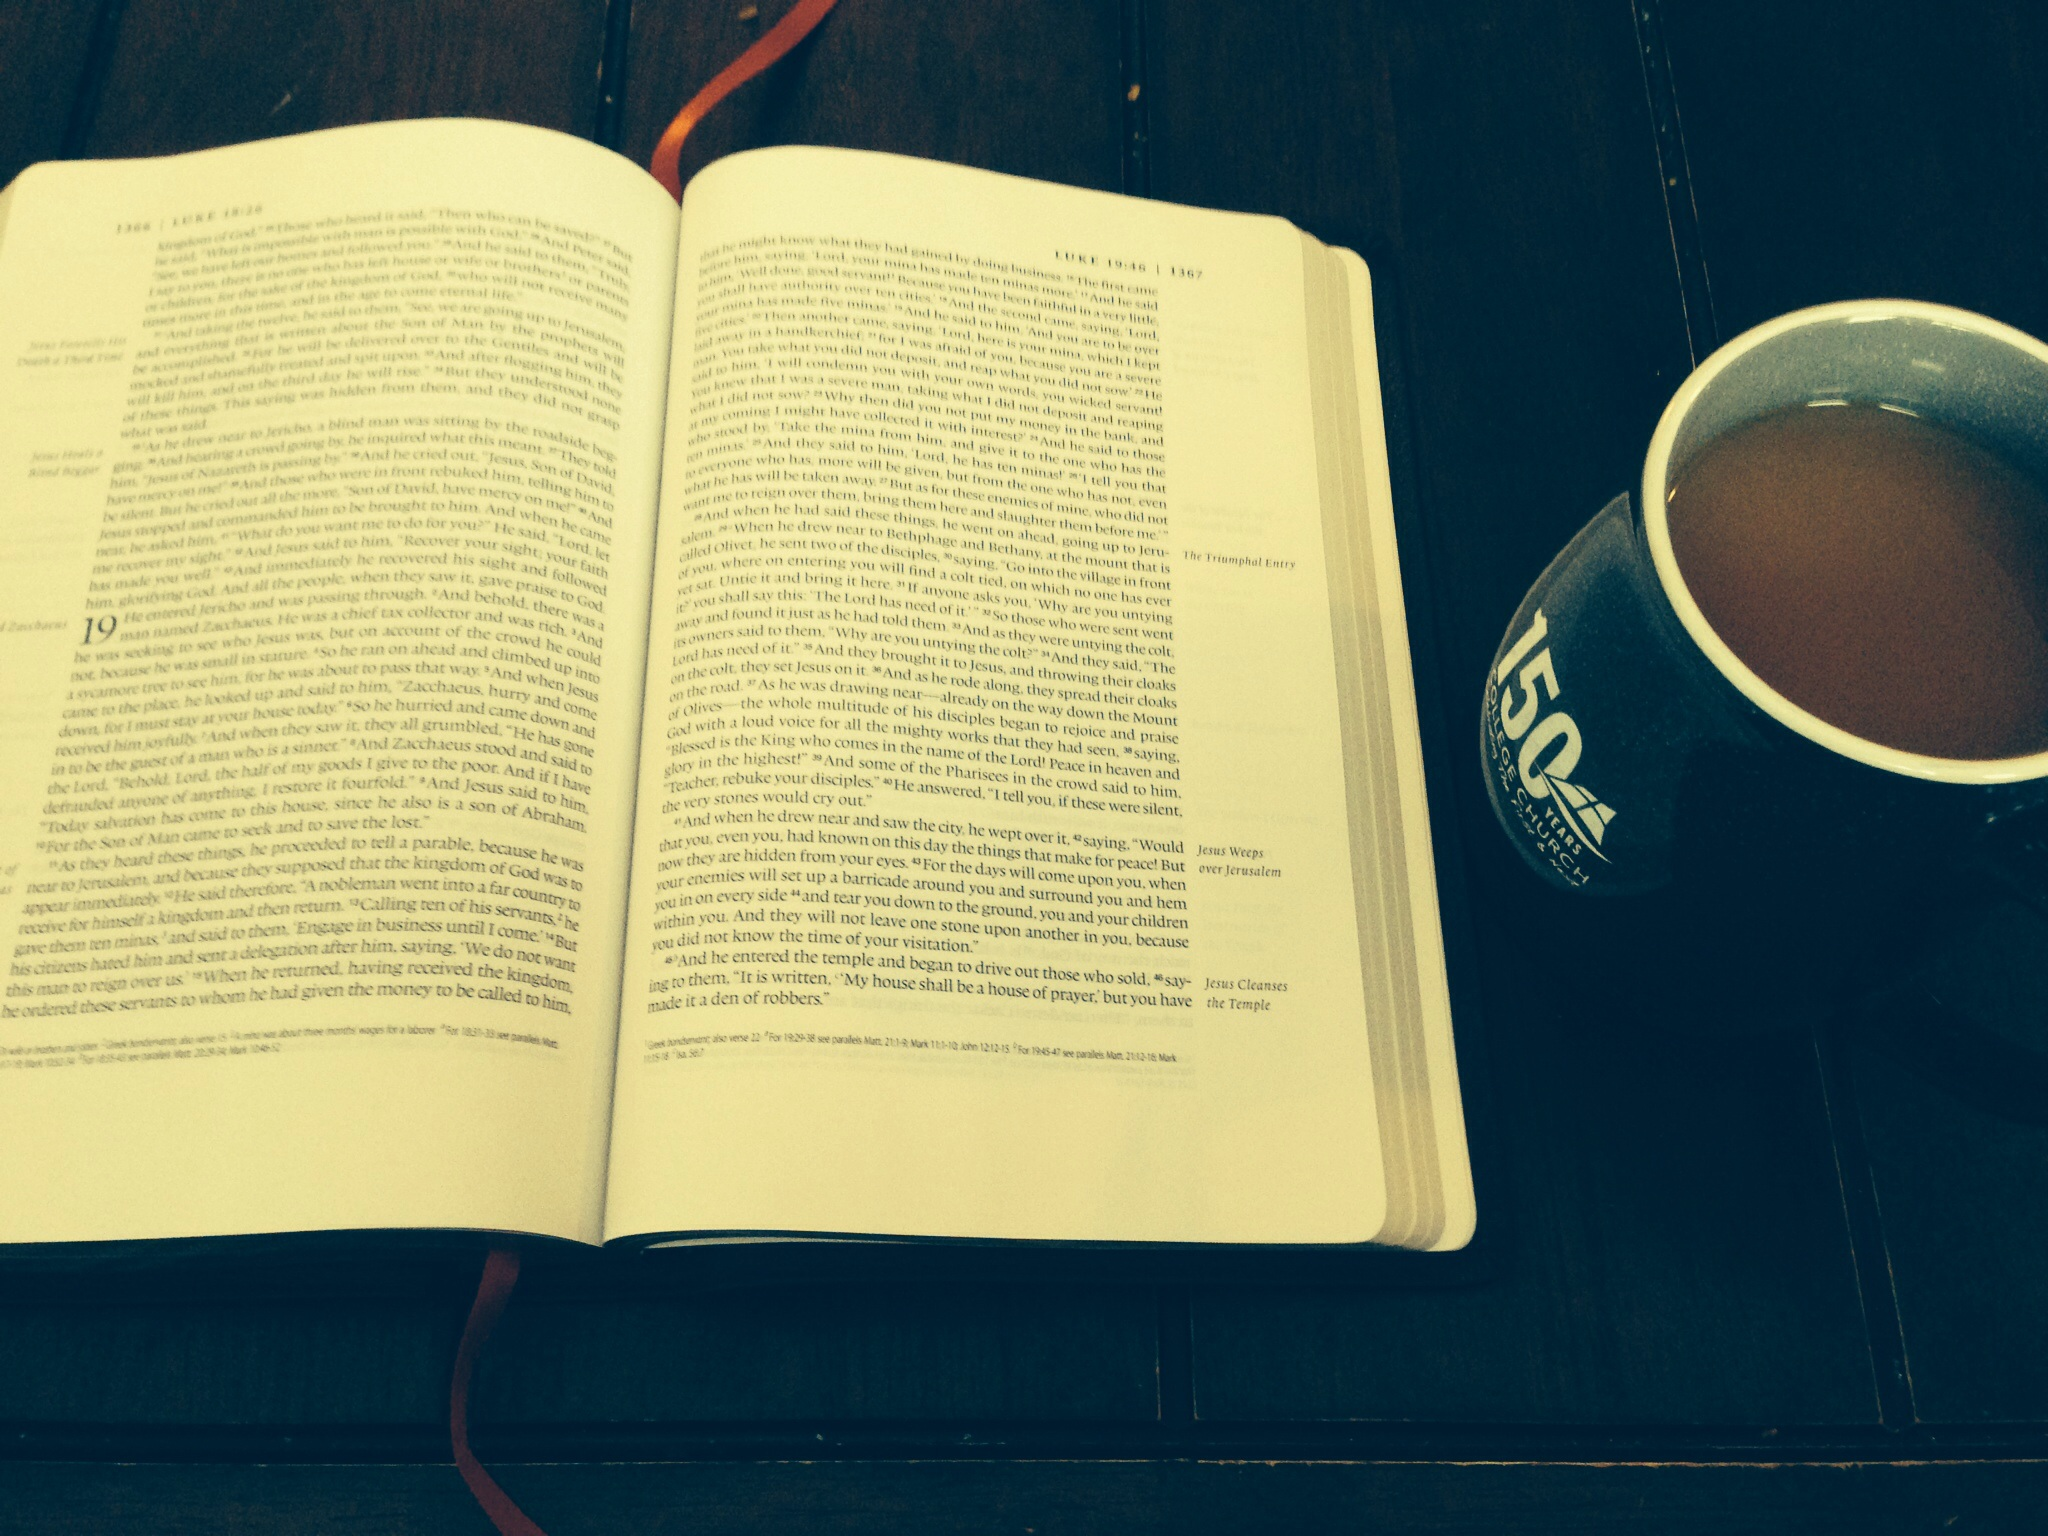 The Bible and a cup of tea